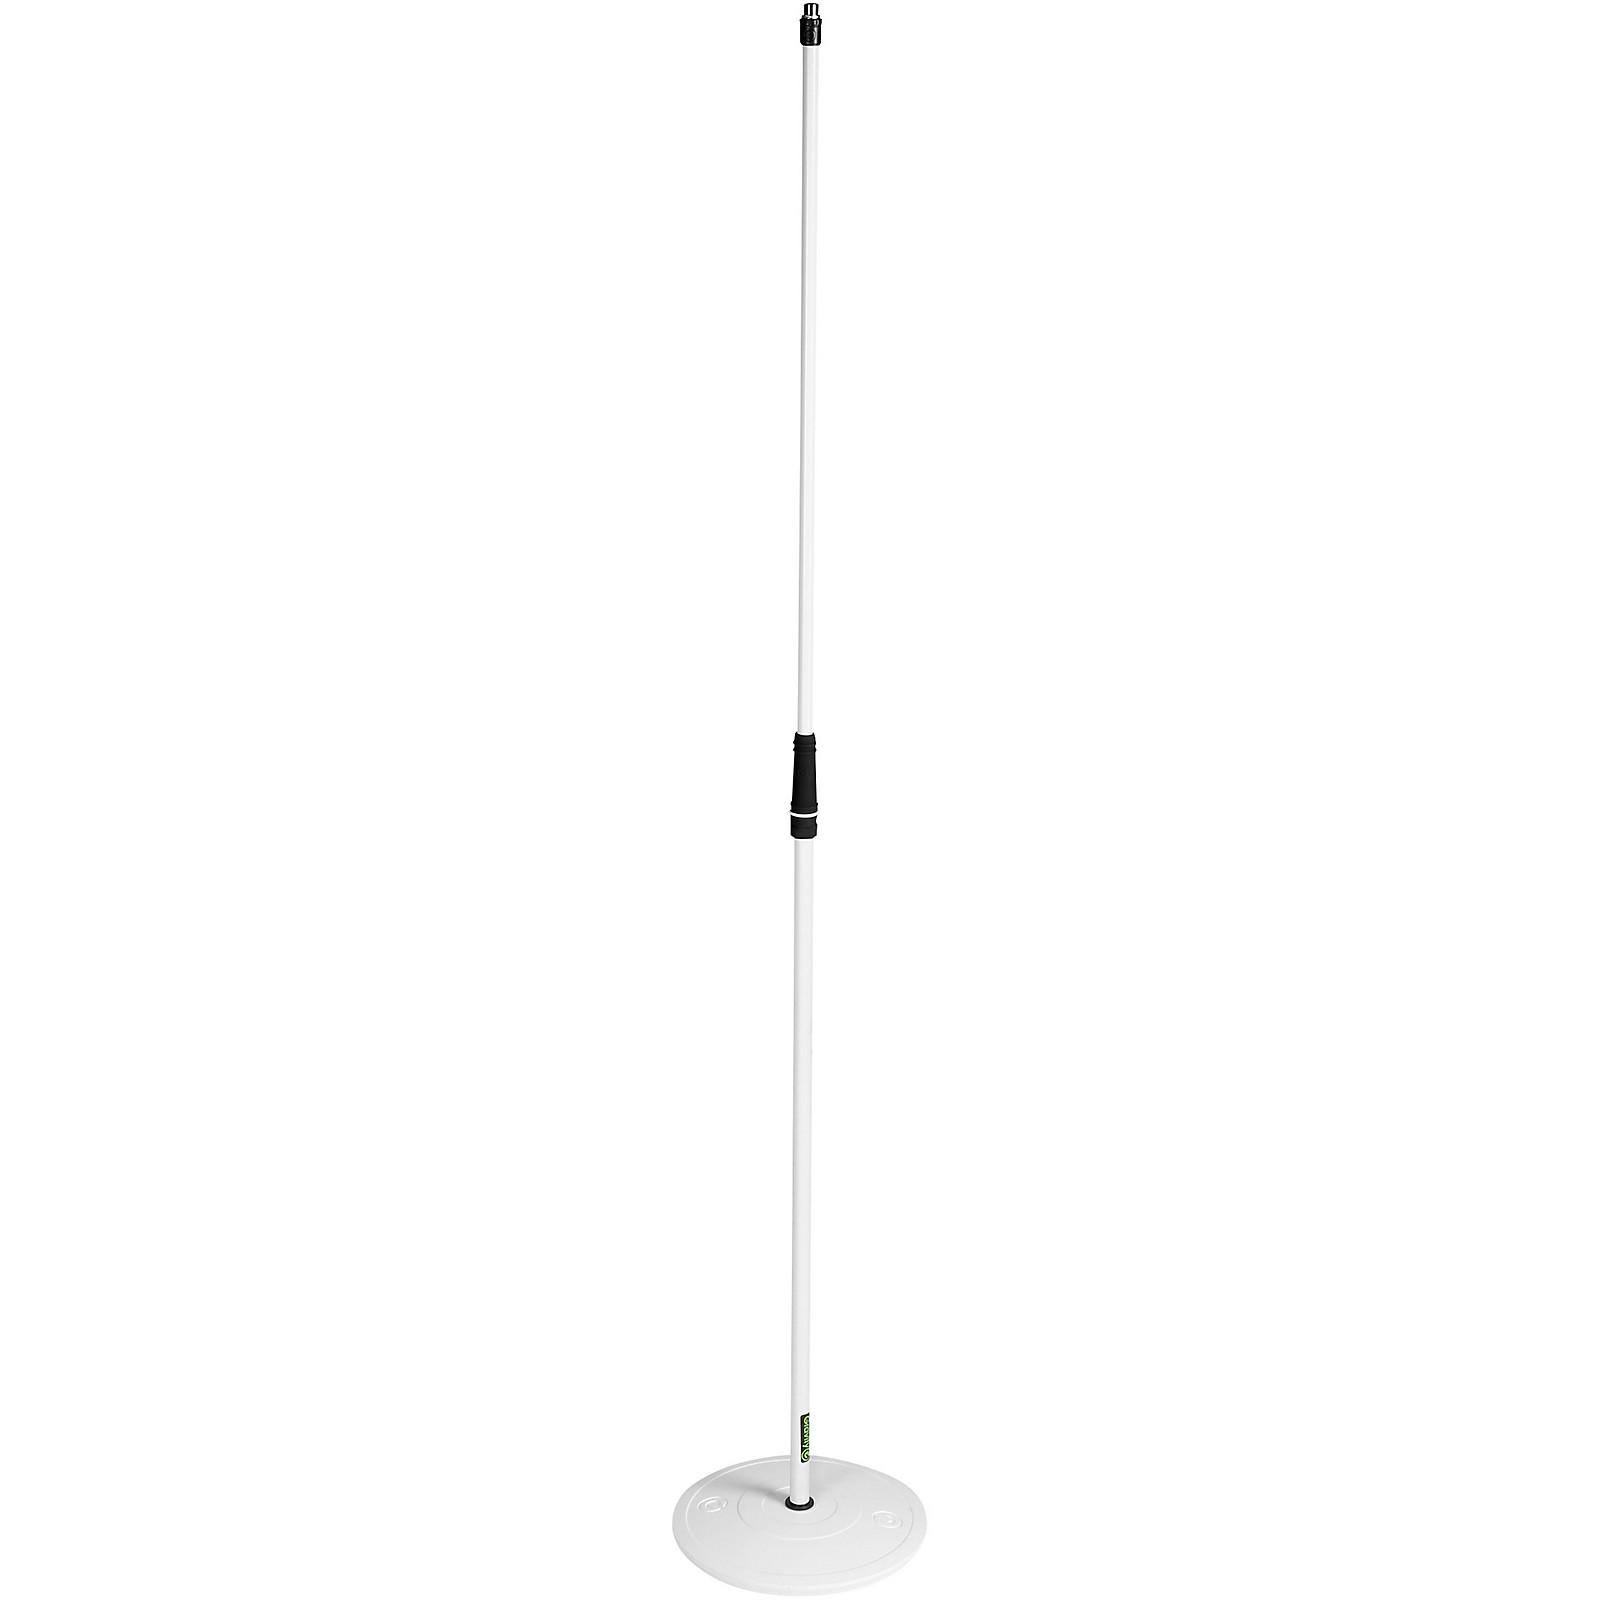 Gravity Stands Microphone Stand With Round Base - White